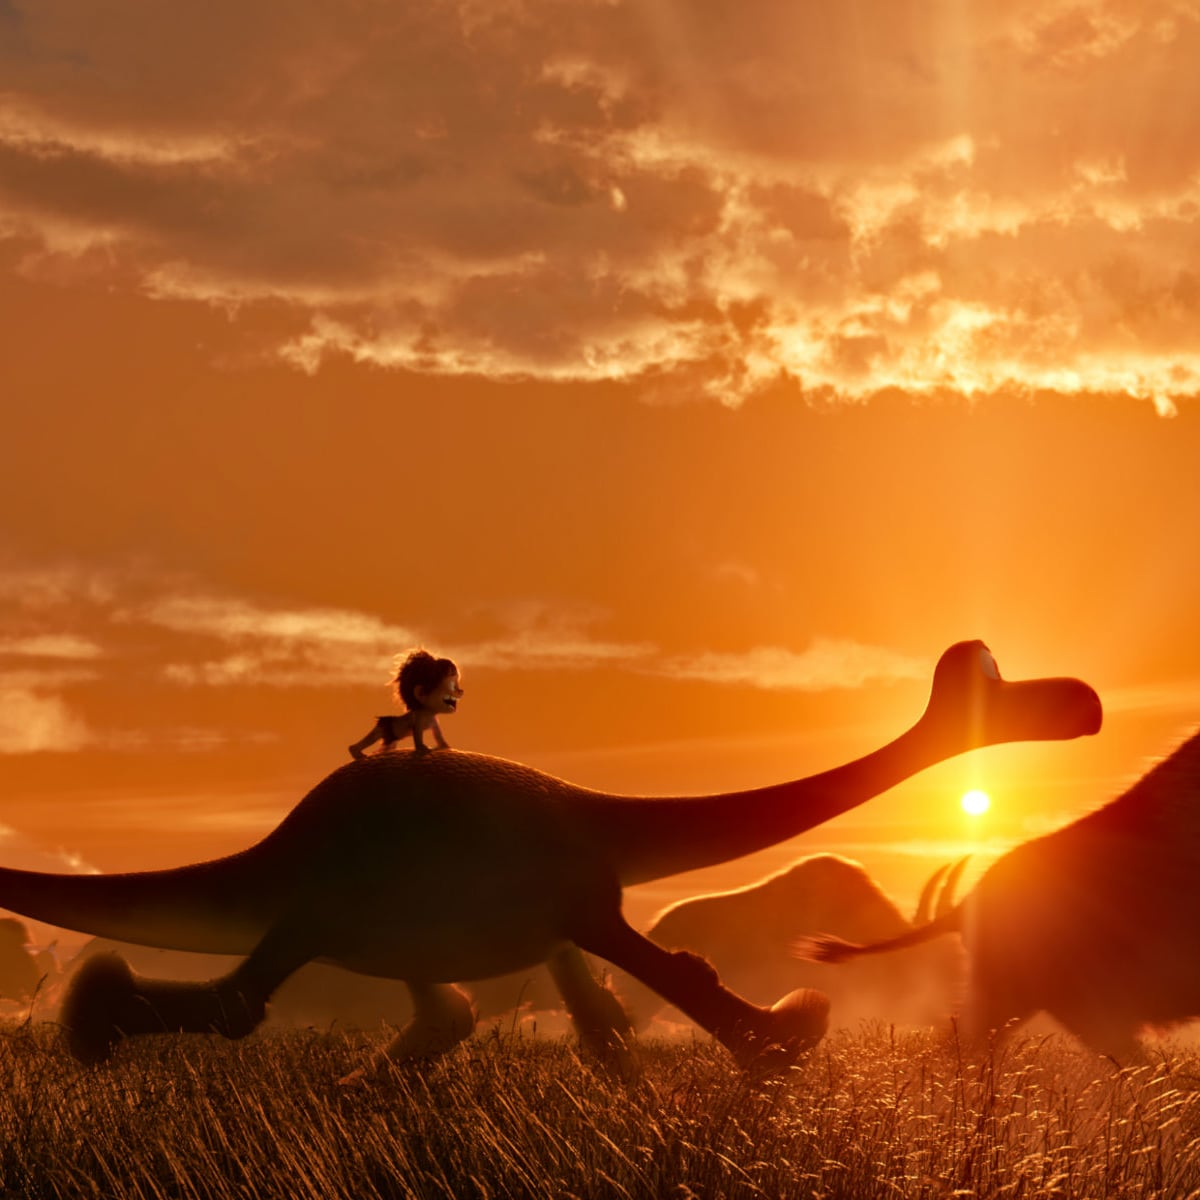 Scene from The Good Dinosaur